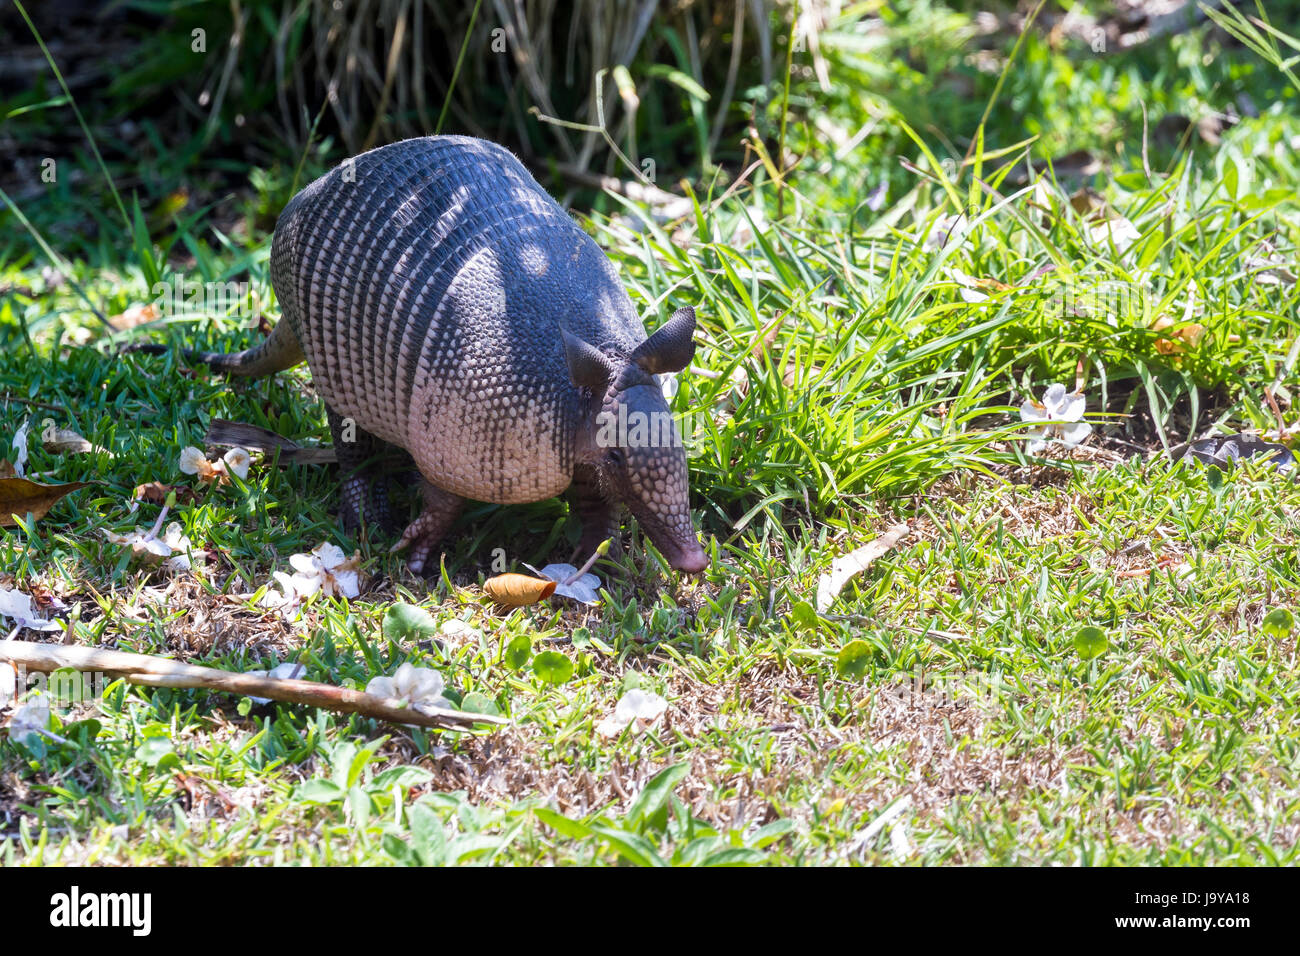 close up of a nine banded armadillo in a yard looking for insects on the ground. - Stock Image